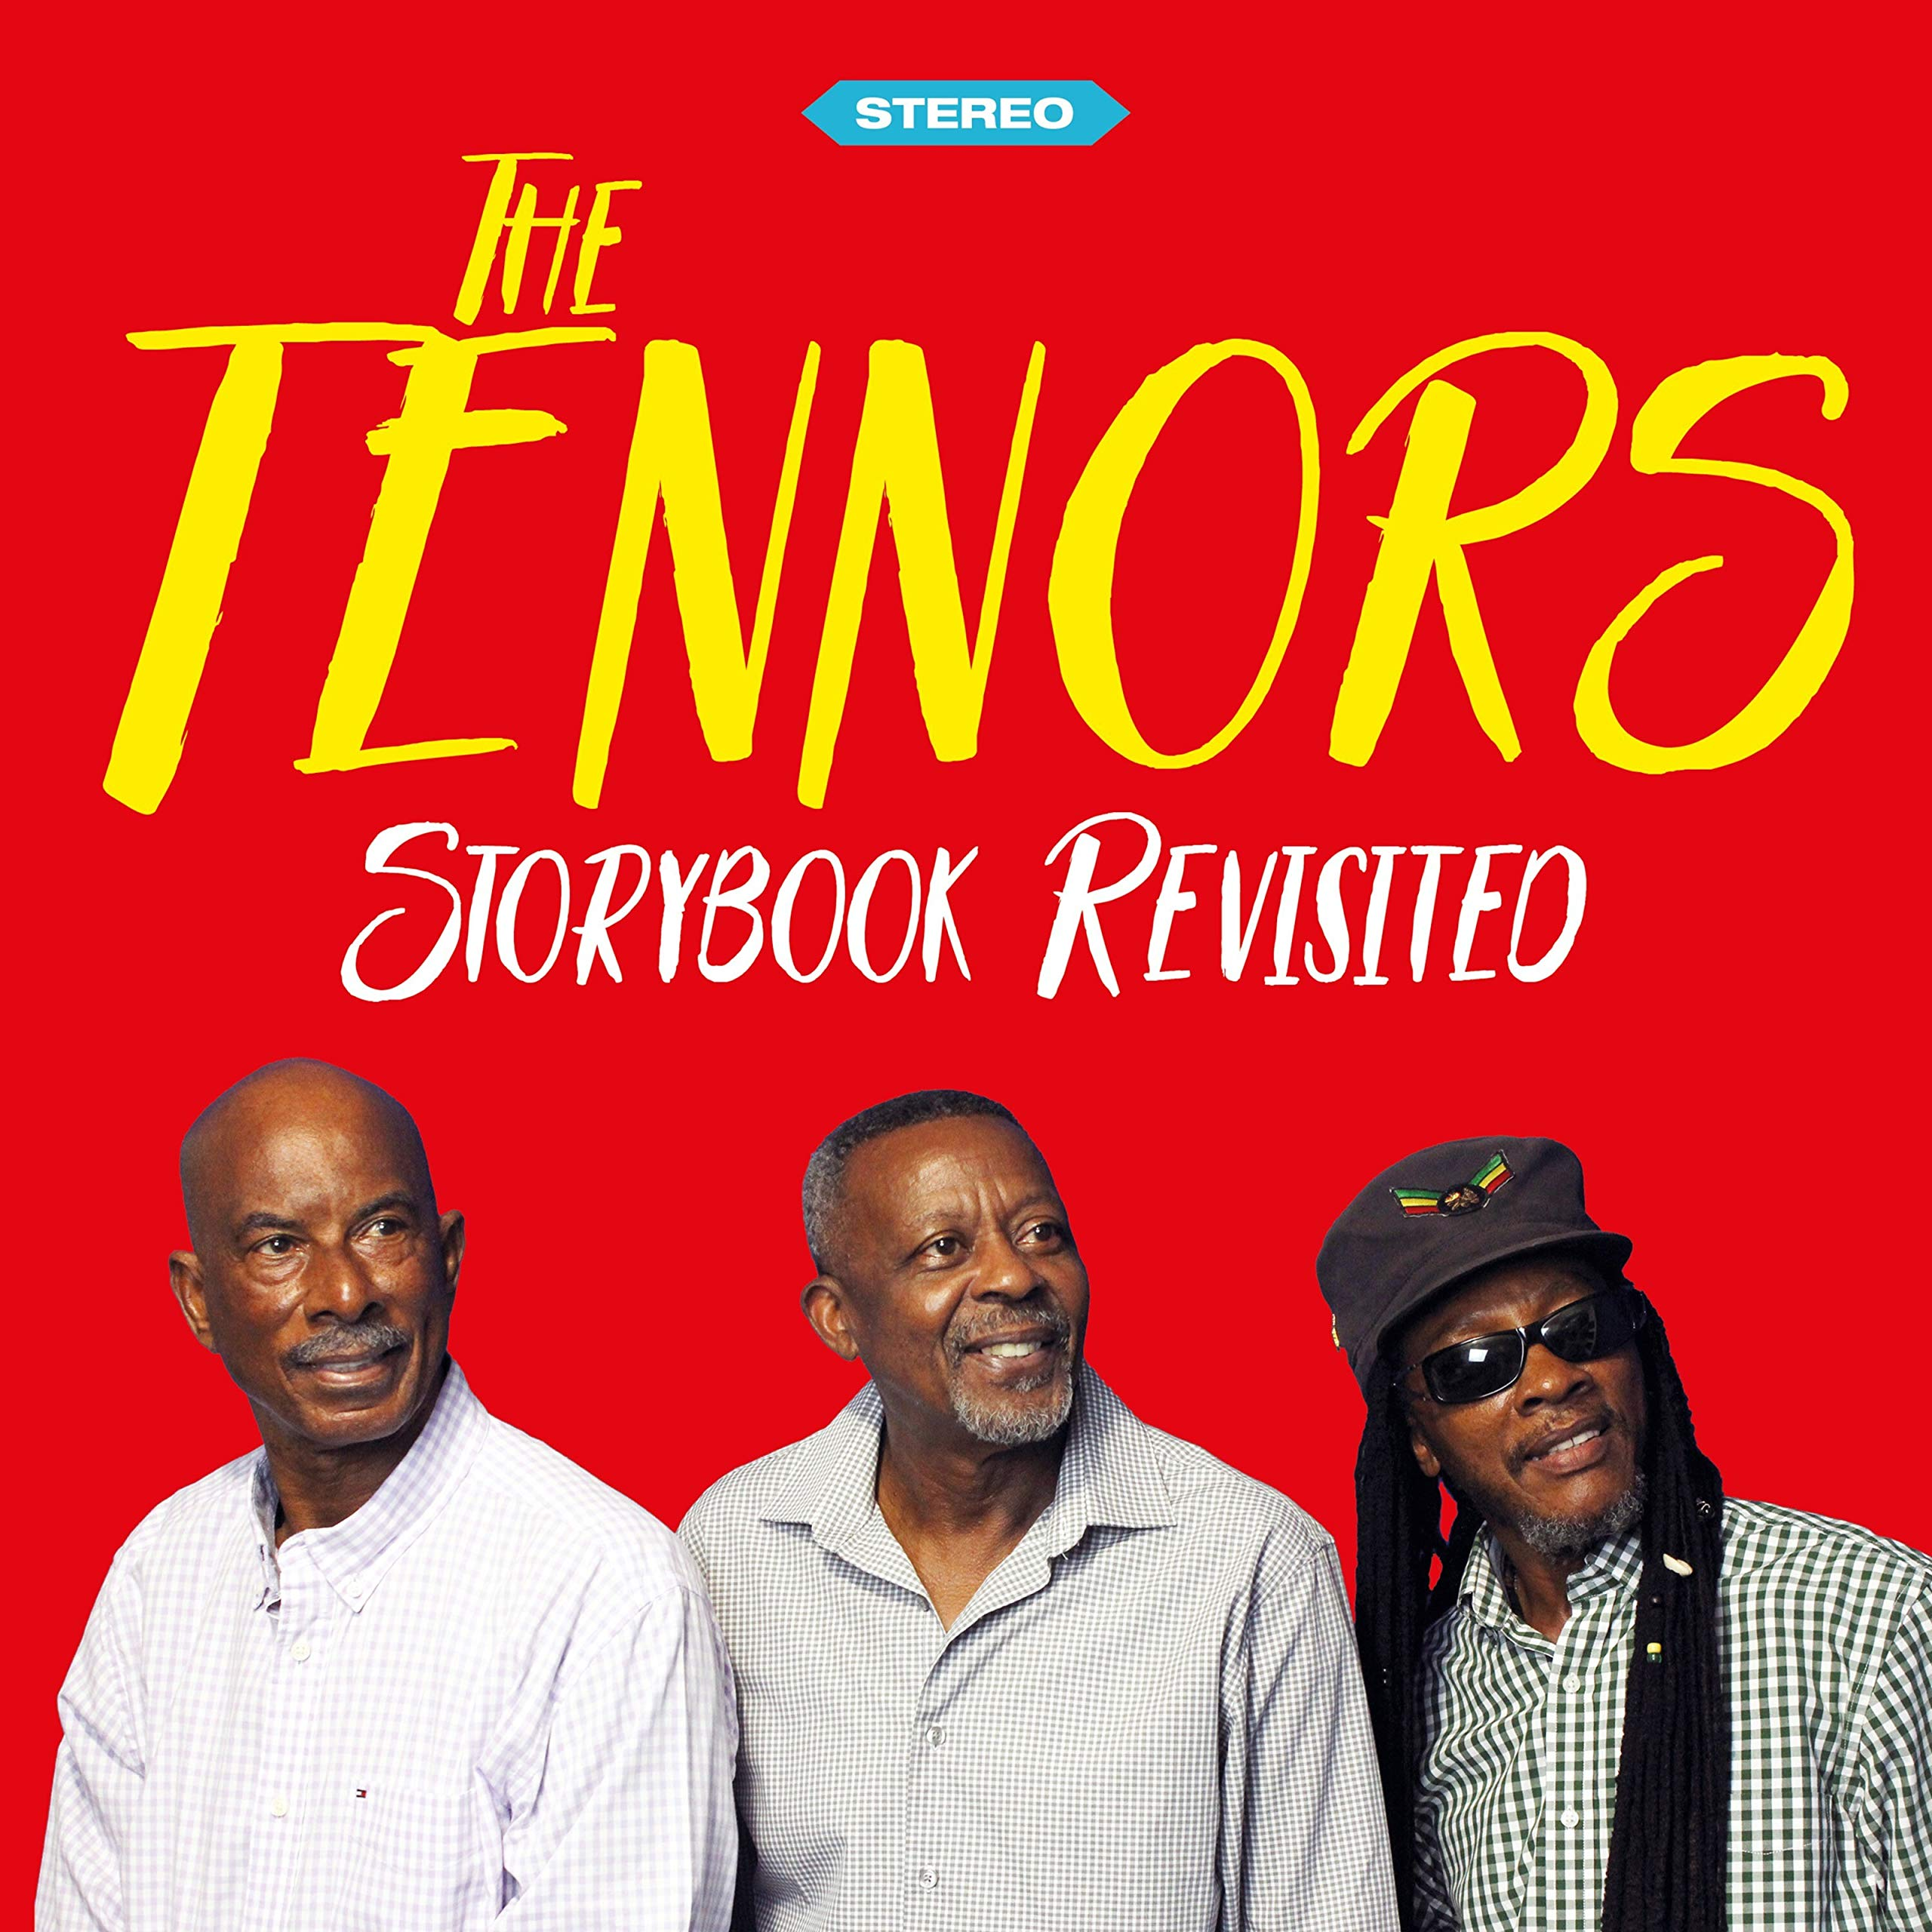 The Tennors – Storybook Revisited (2019) [FLAC]